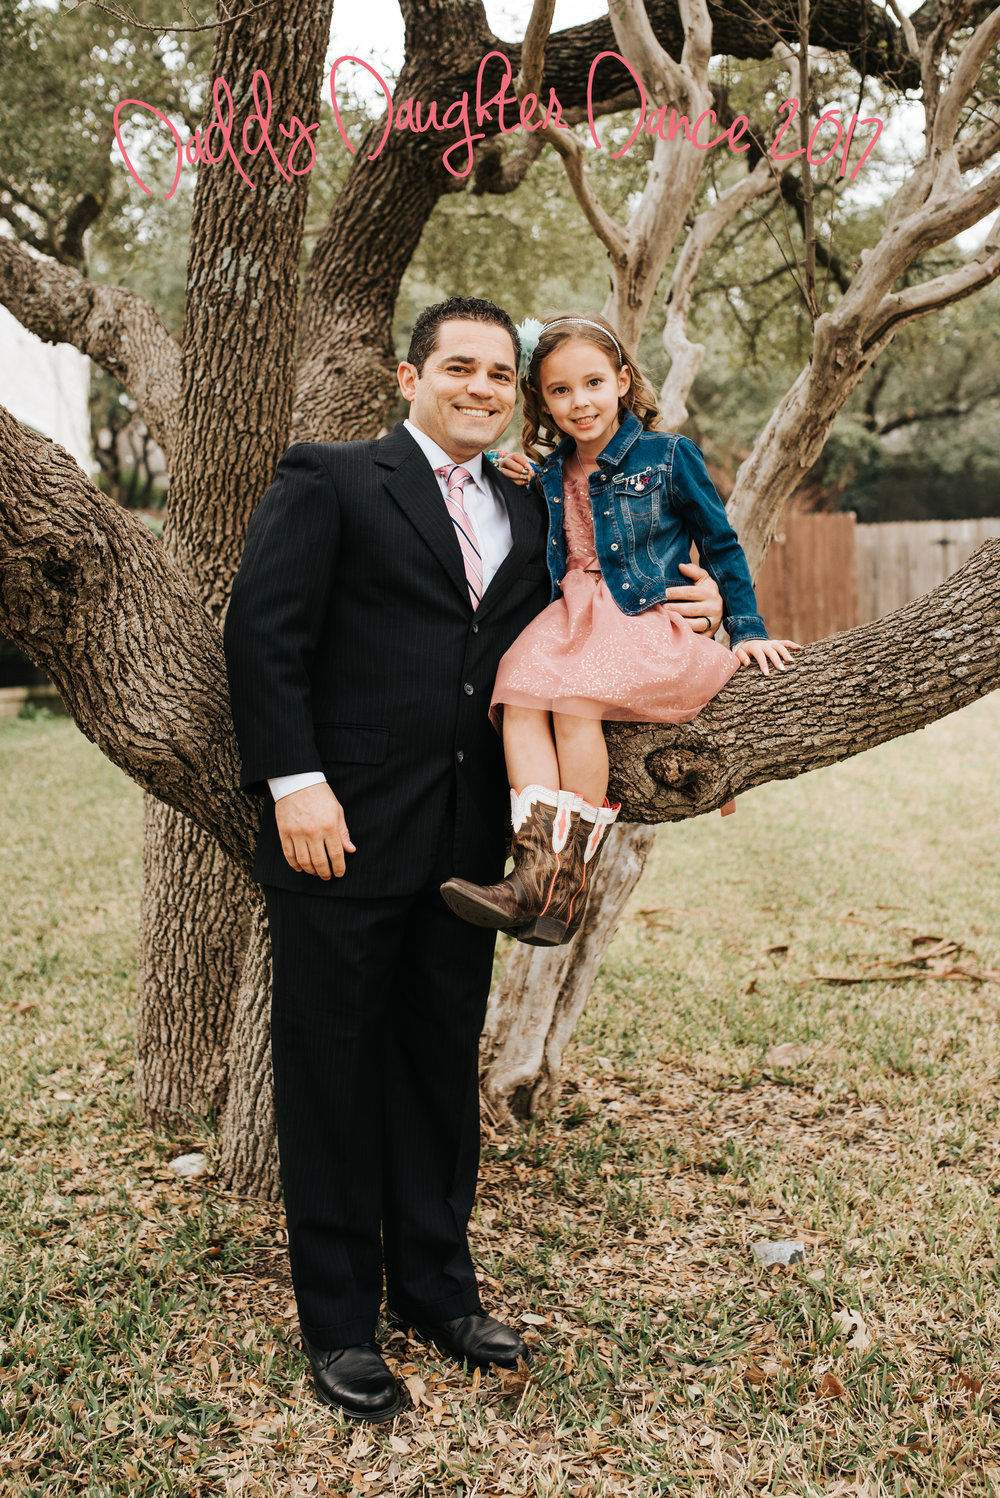 Daddy Daughter Dance-Austin Event Photography-Round Rock Event Photography-Emily Ingalls Photography-Pflugerville Event Photography-Georgetown Event Photography